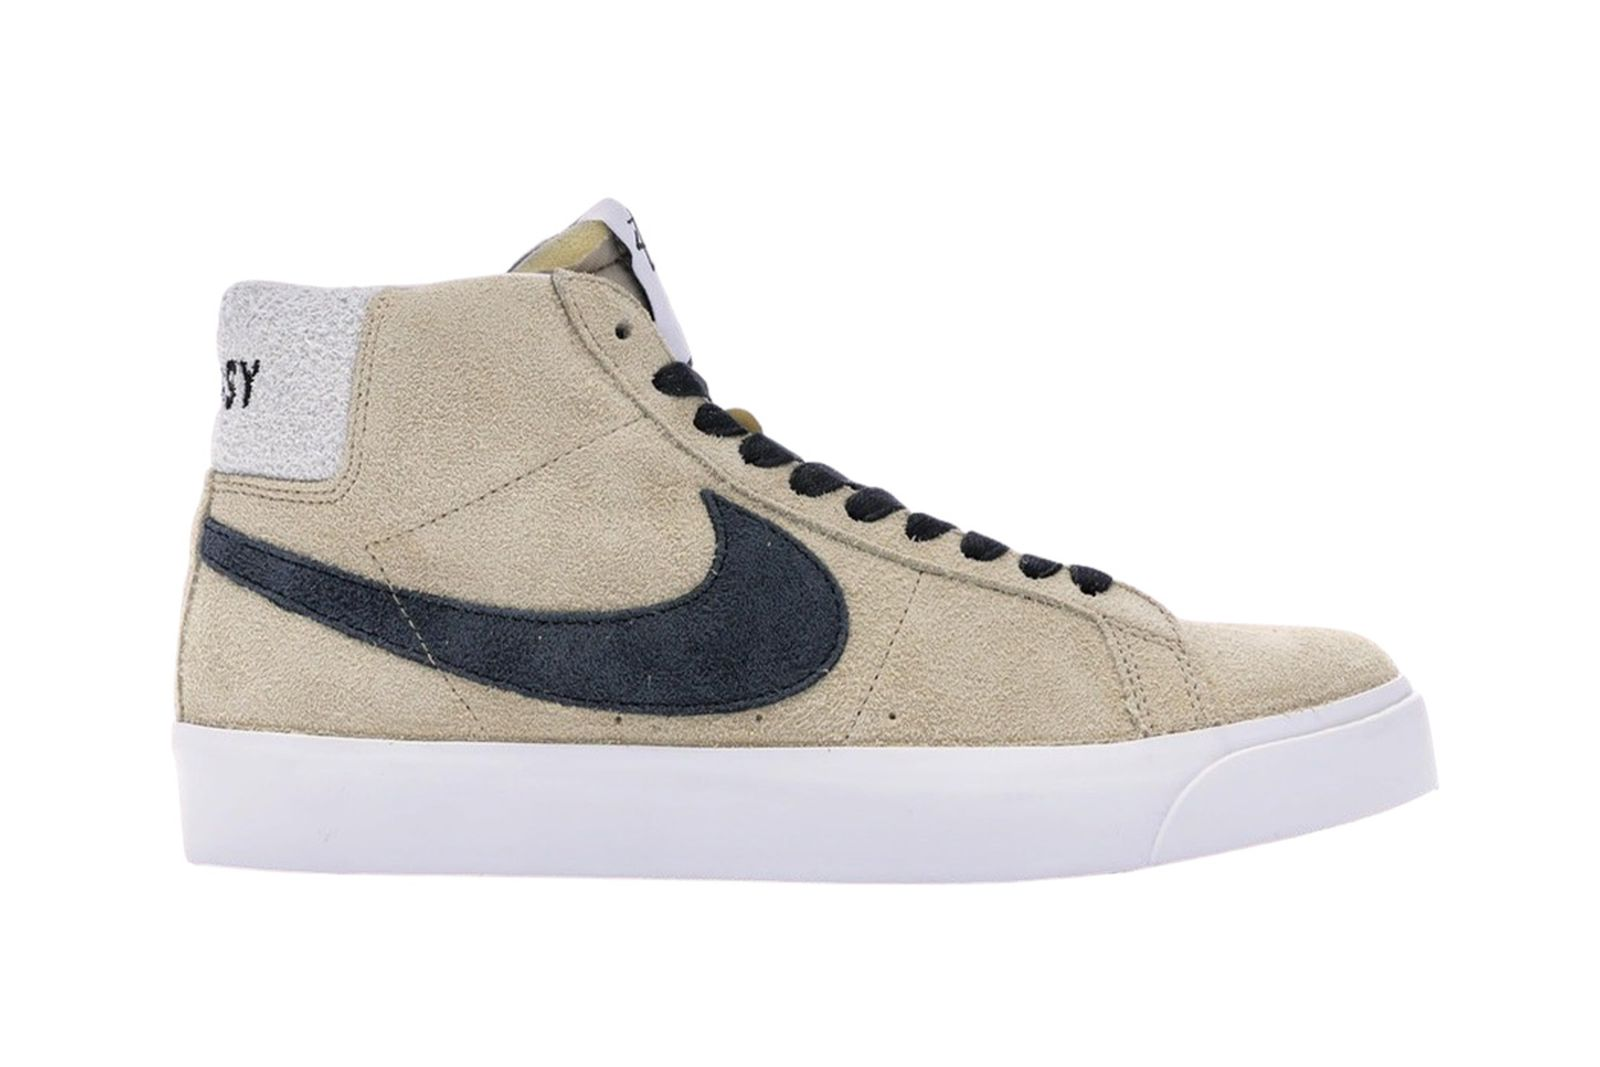 stussy-nike-sneaker-collaboration-roundup-15